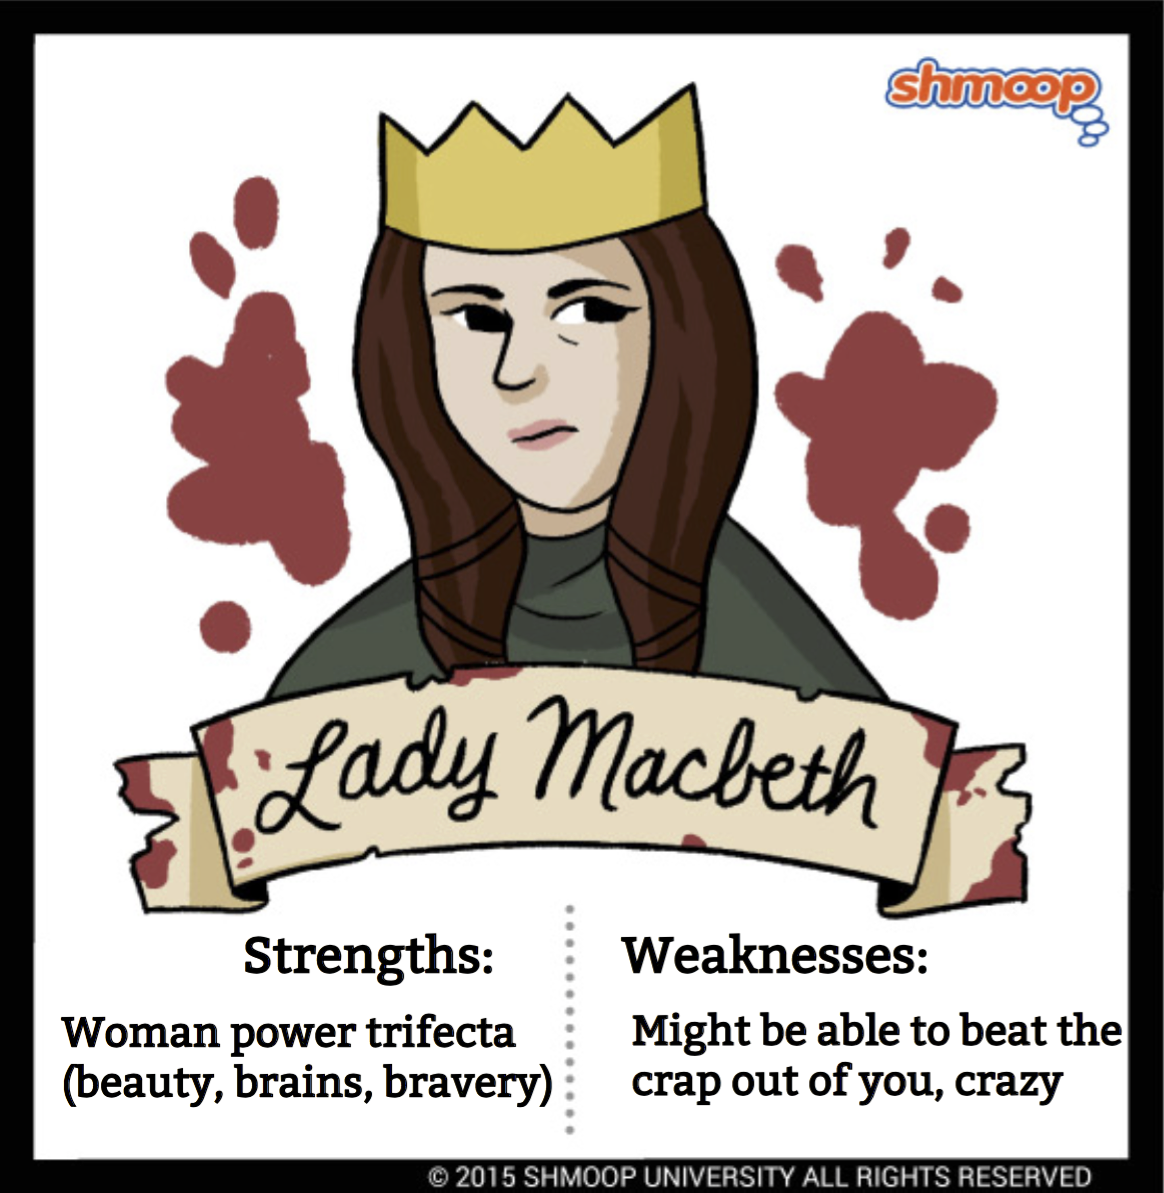 role of lady macbeth Extracts from this document introduction macbeth-the role of lady macbeth i have recently read the play macbeth by famous english playwright william shakespeare.